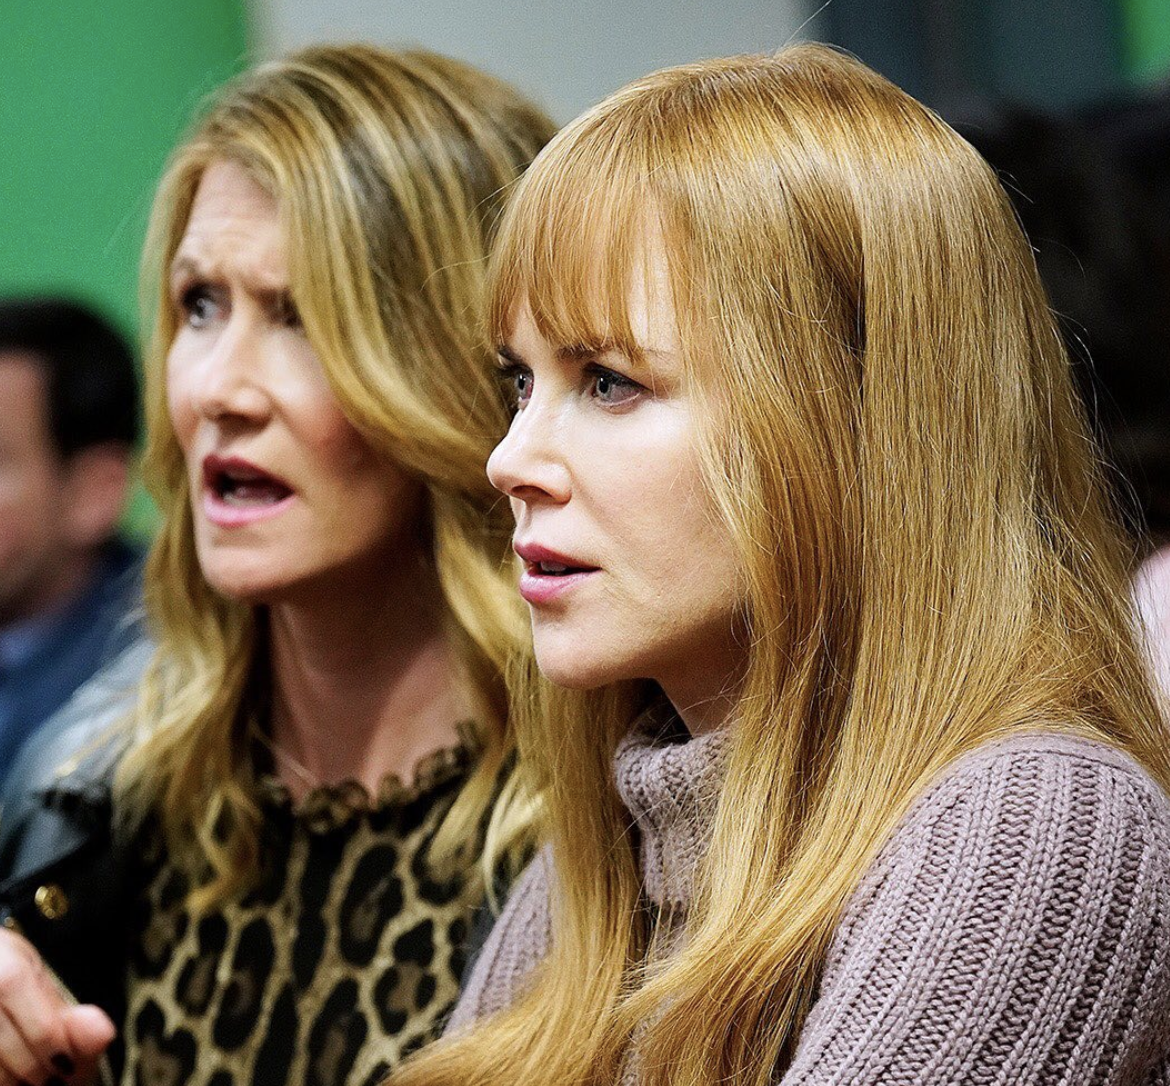 The Reason 'Big Little Lies' Might Not Be Returning for Another Season Is Disappointing